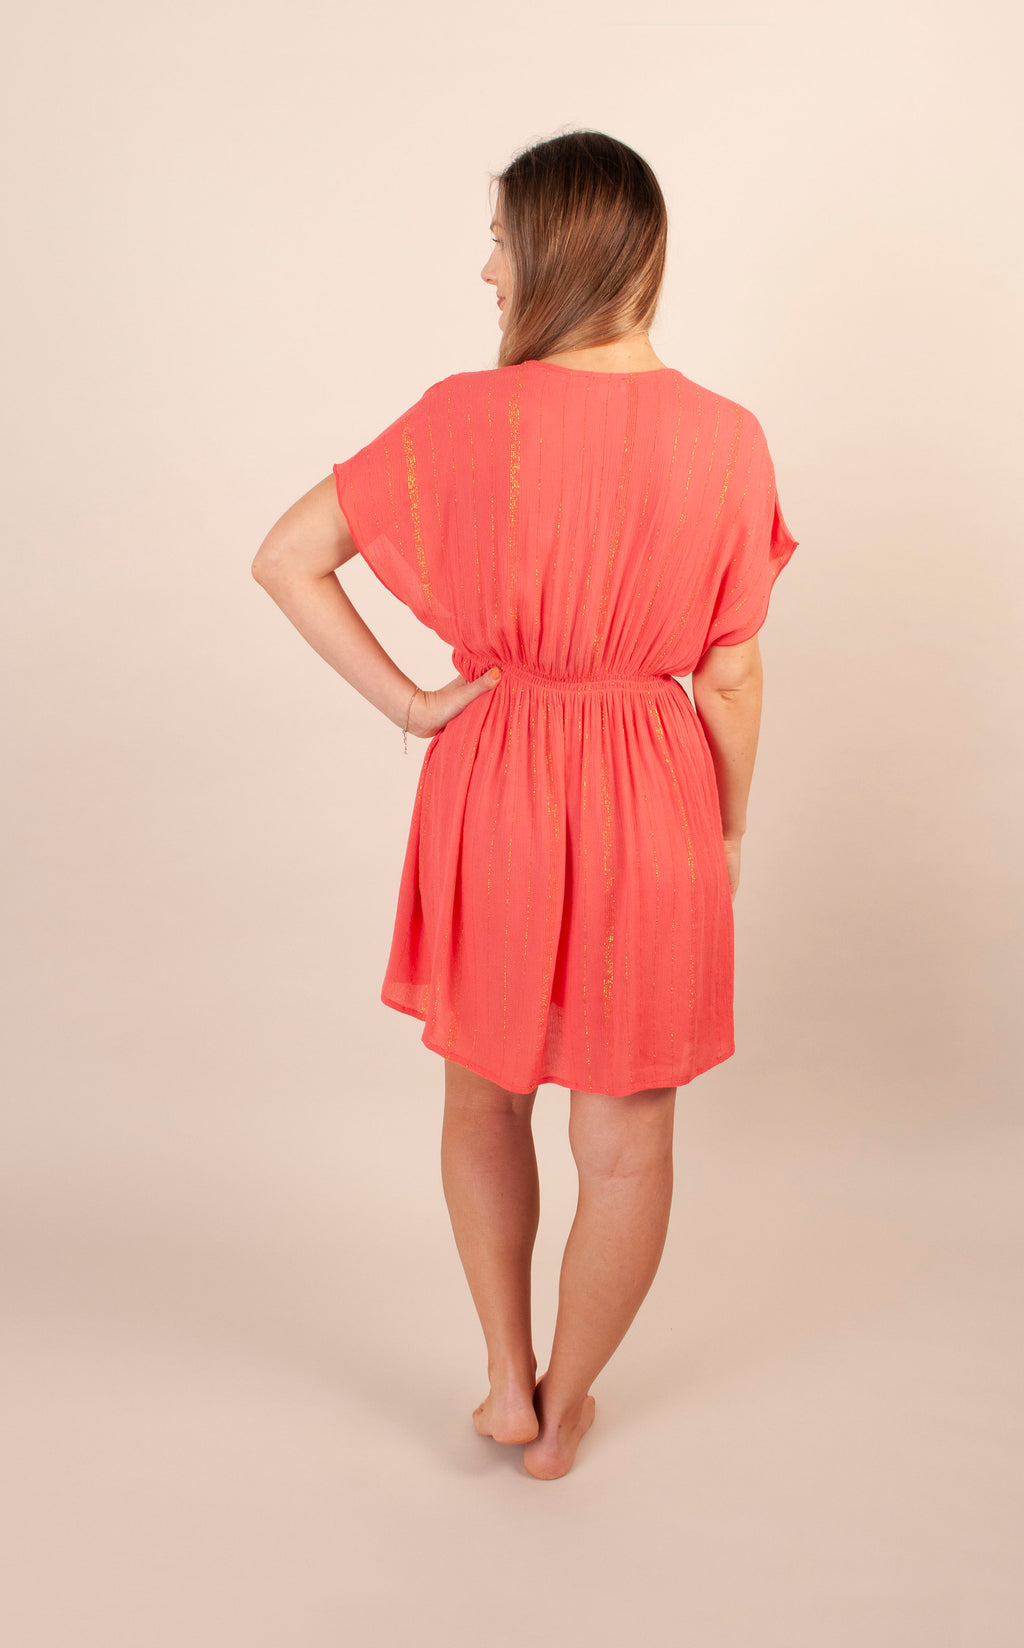 Tahiti Lagoon Dress - Coral